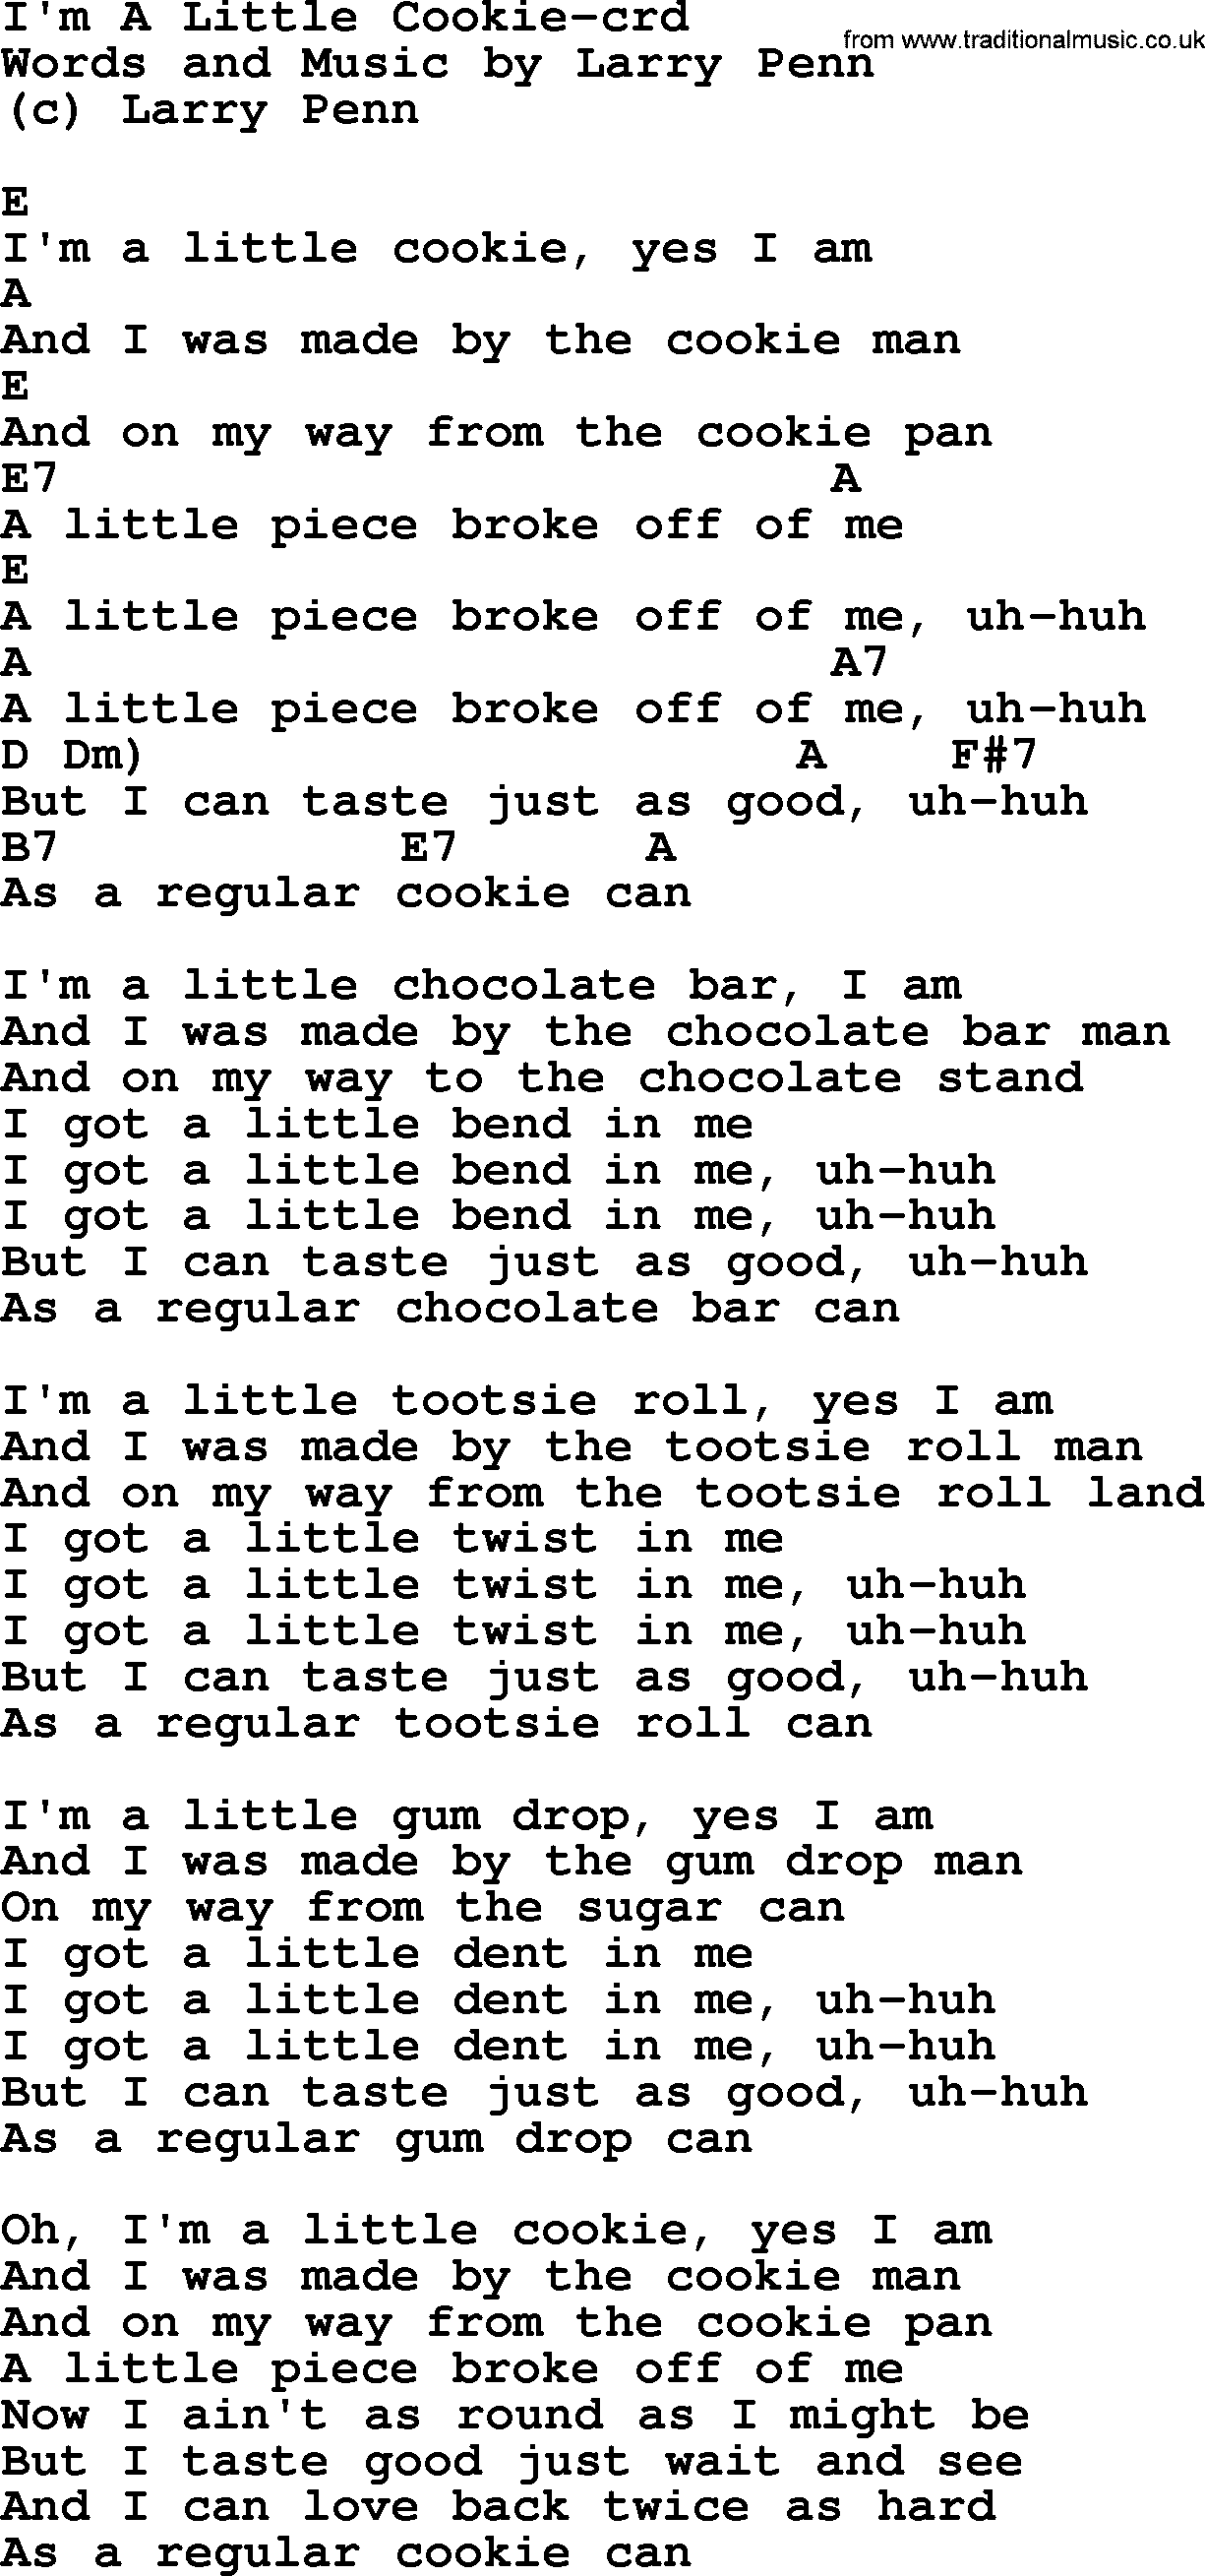 Pete Seeger song - I'm A Little Cookie, lyrics and chords